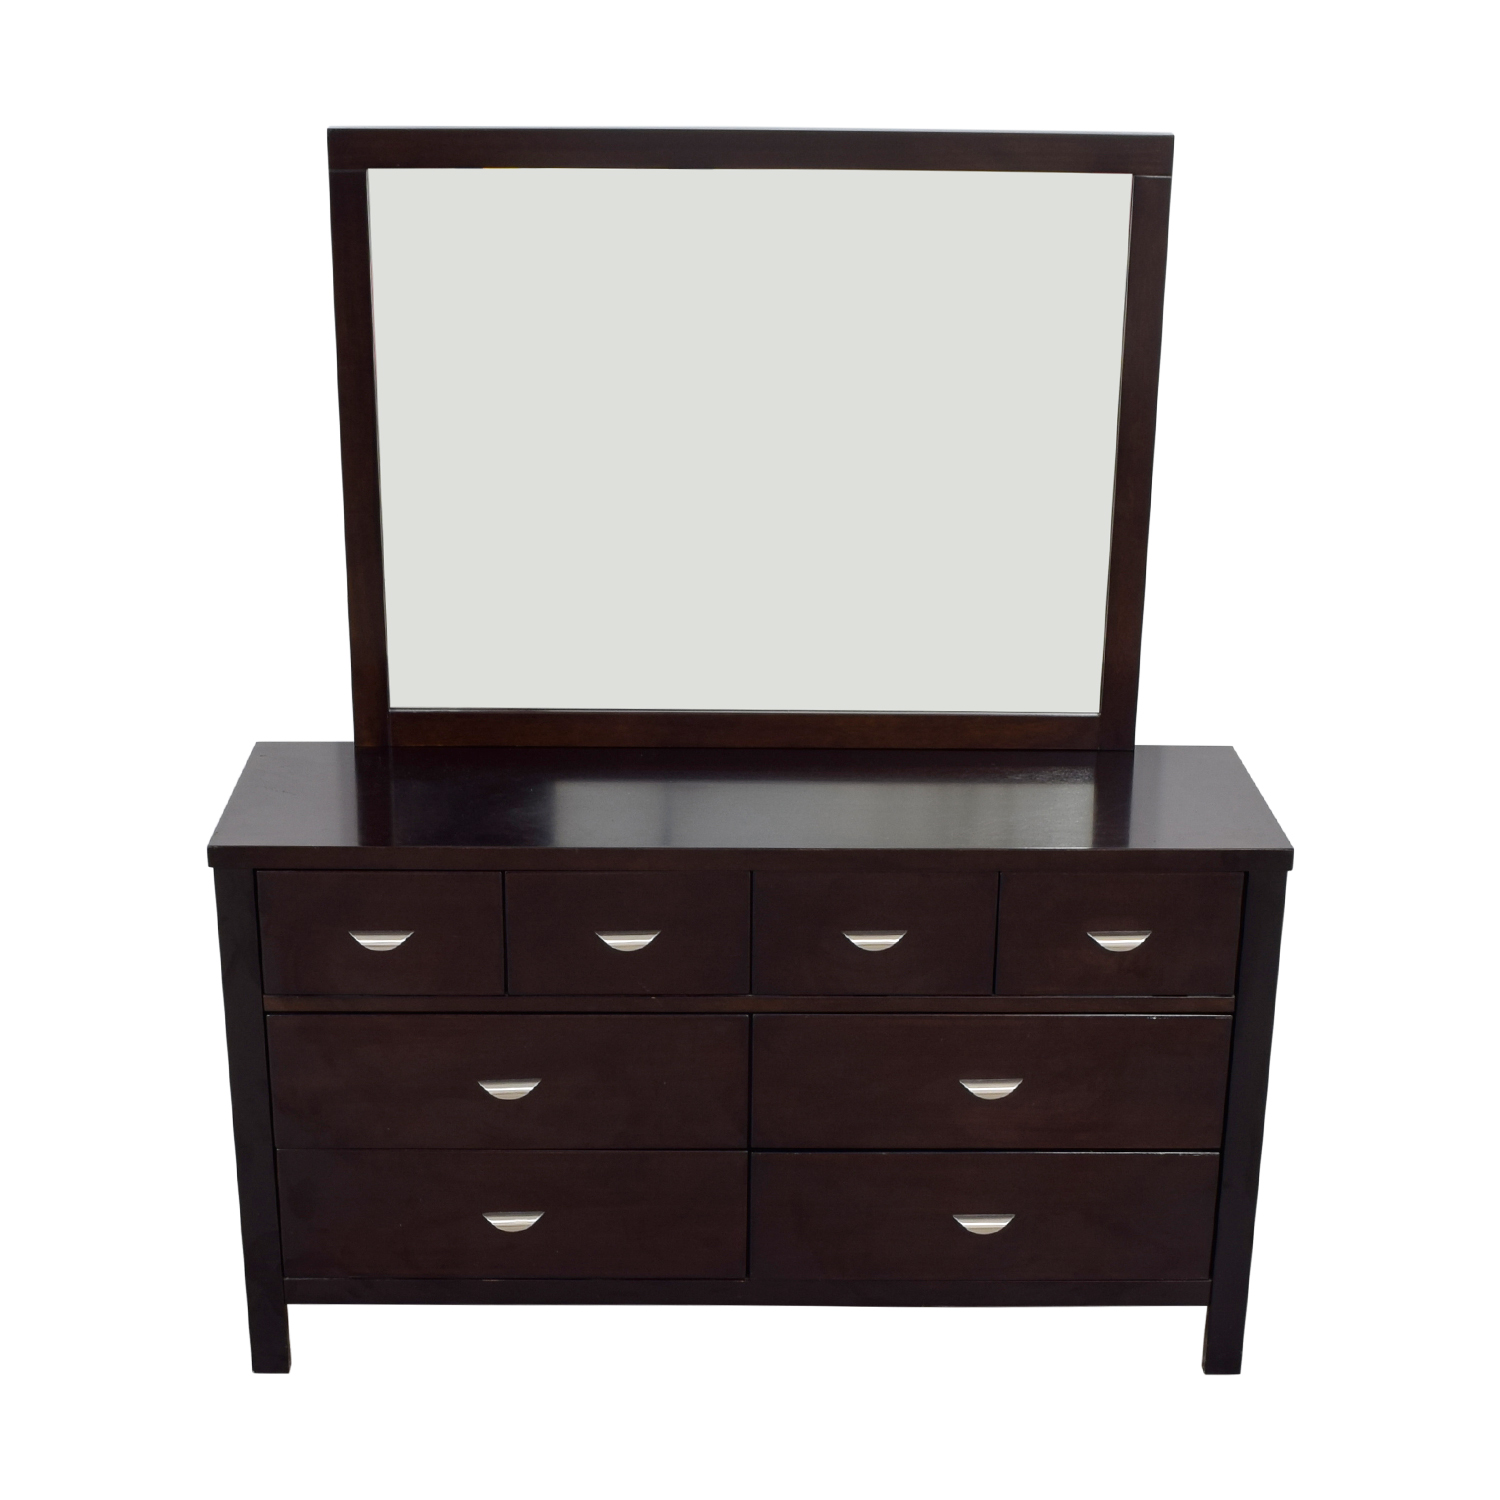 Ligna Ligna Six-Drawer Dresser with Mirror dimensions